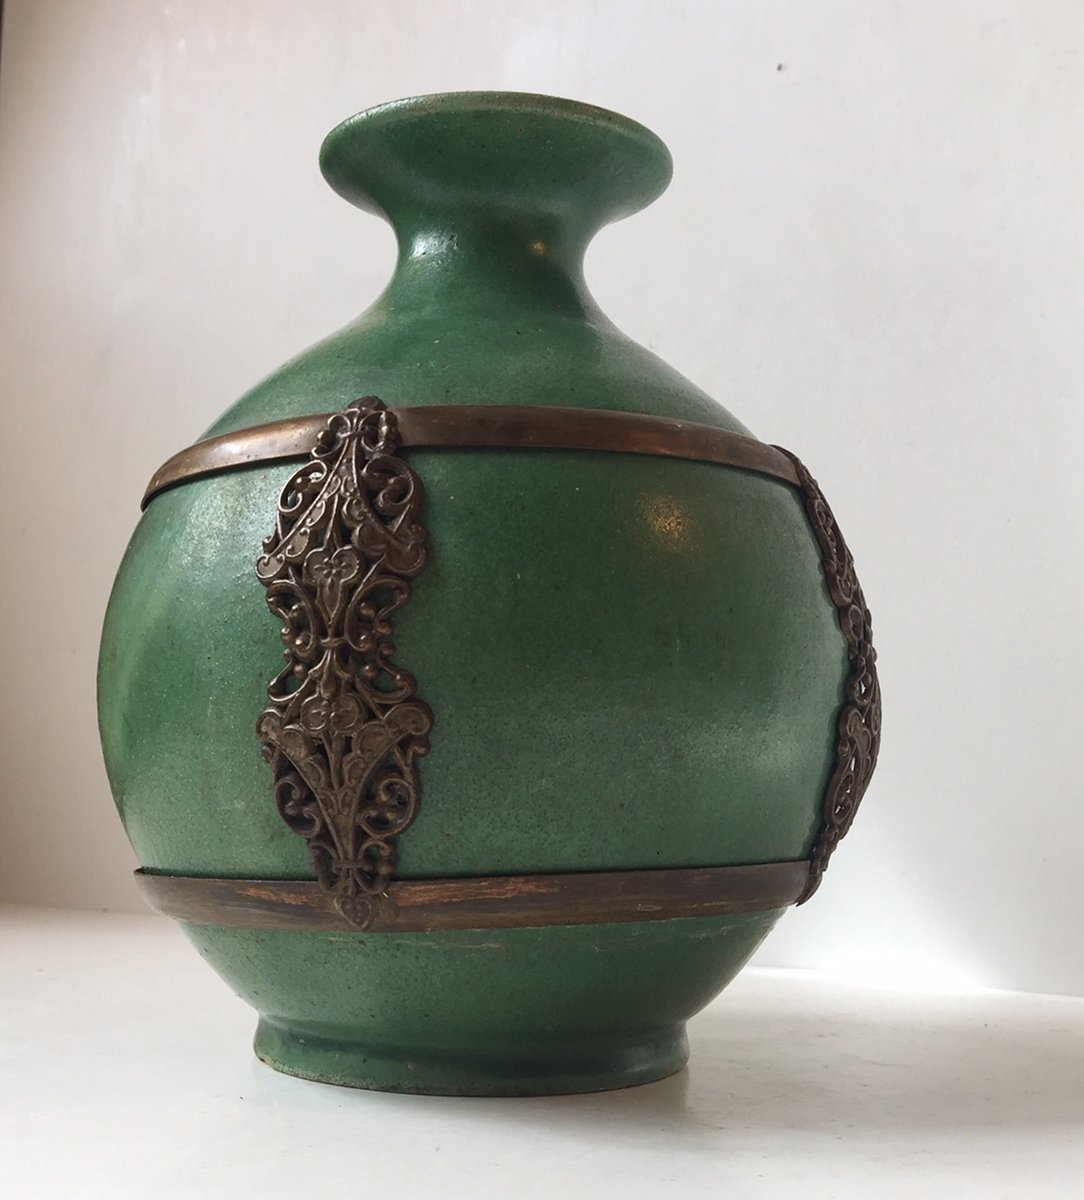 Antique green danish pottery vase with brass details by herman antique green danish pottery vase with brass details by herman august khler reviewsmspy